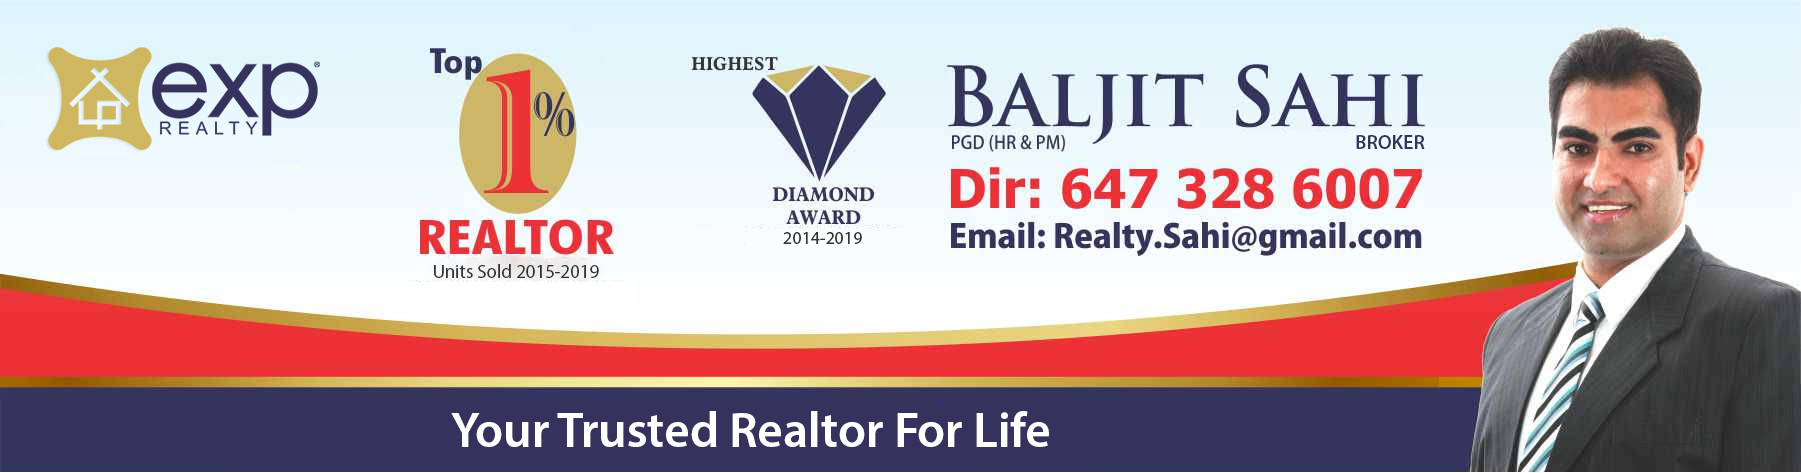 Baljit Sahi Real Estate